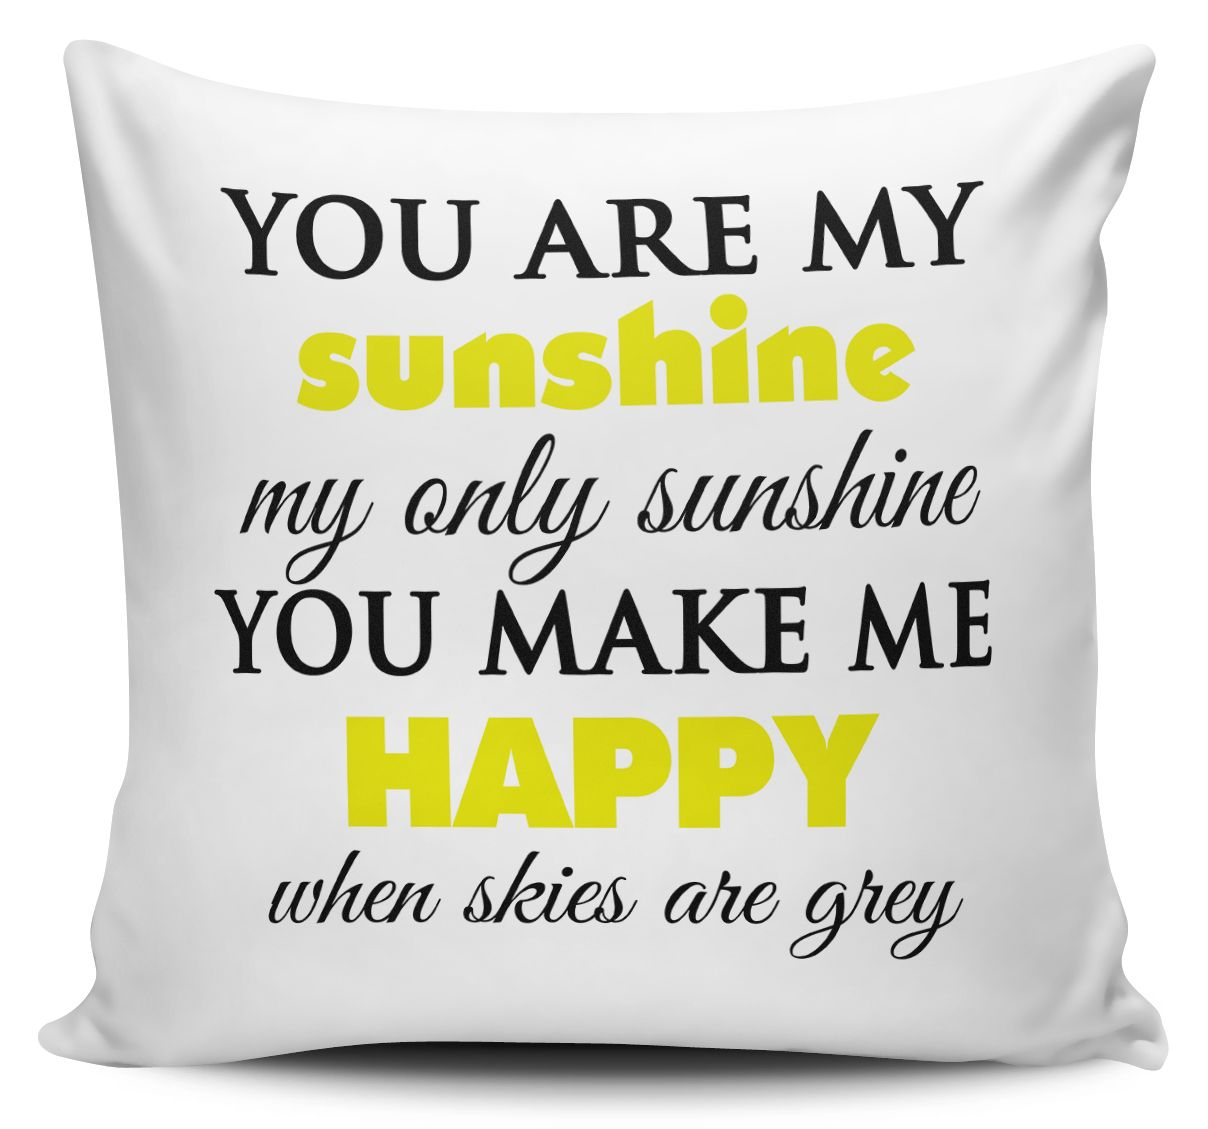 you are my sunshine cushion cover